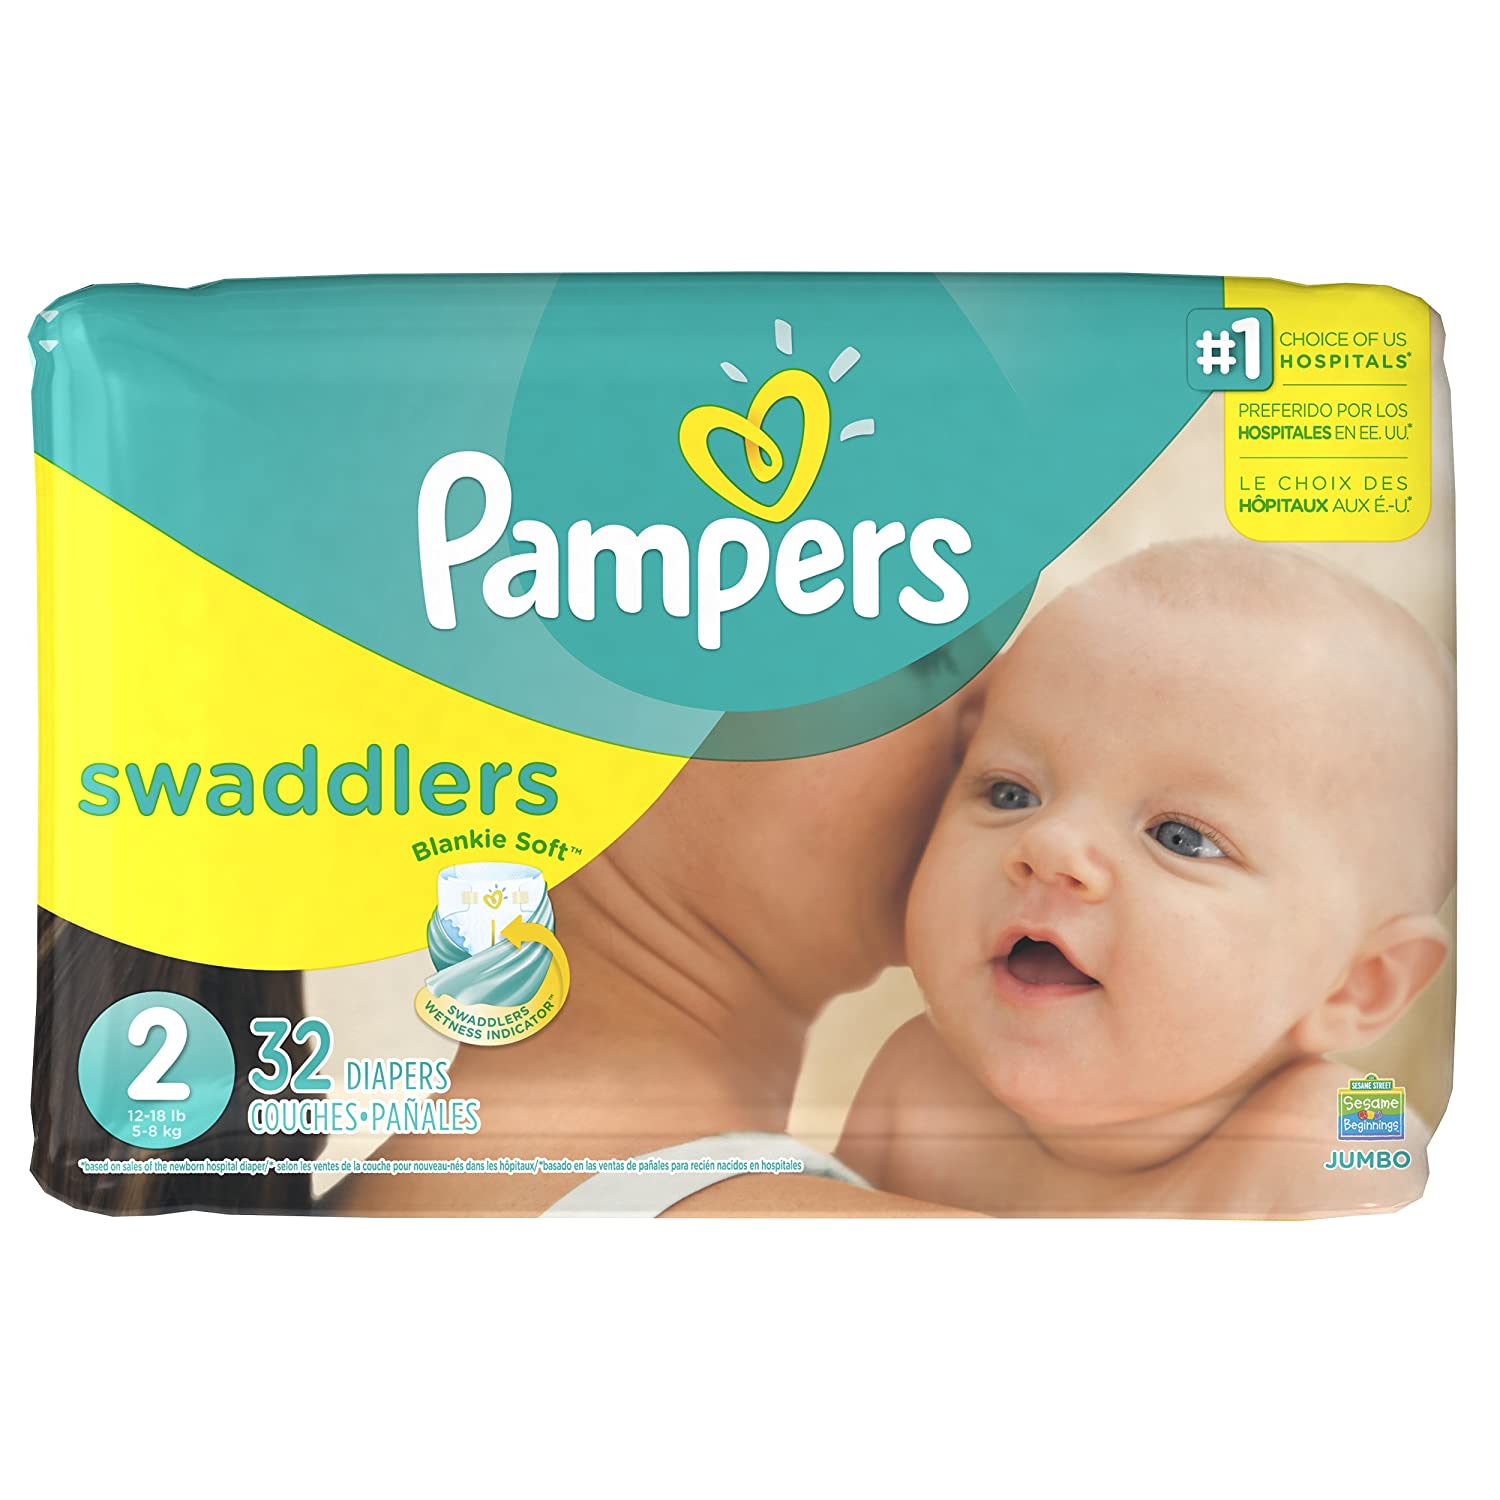 Pampers Swaddlers pañales desechables tamaño 2, 32 unidades, JUMBO ...